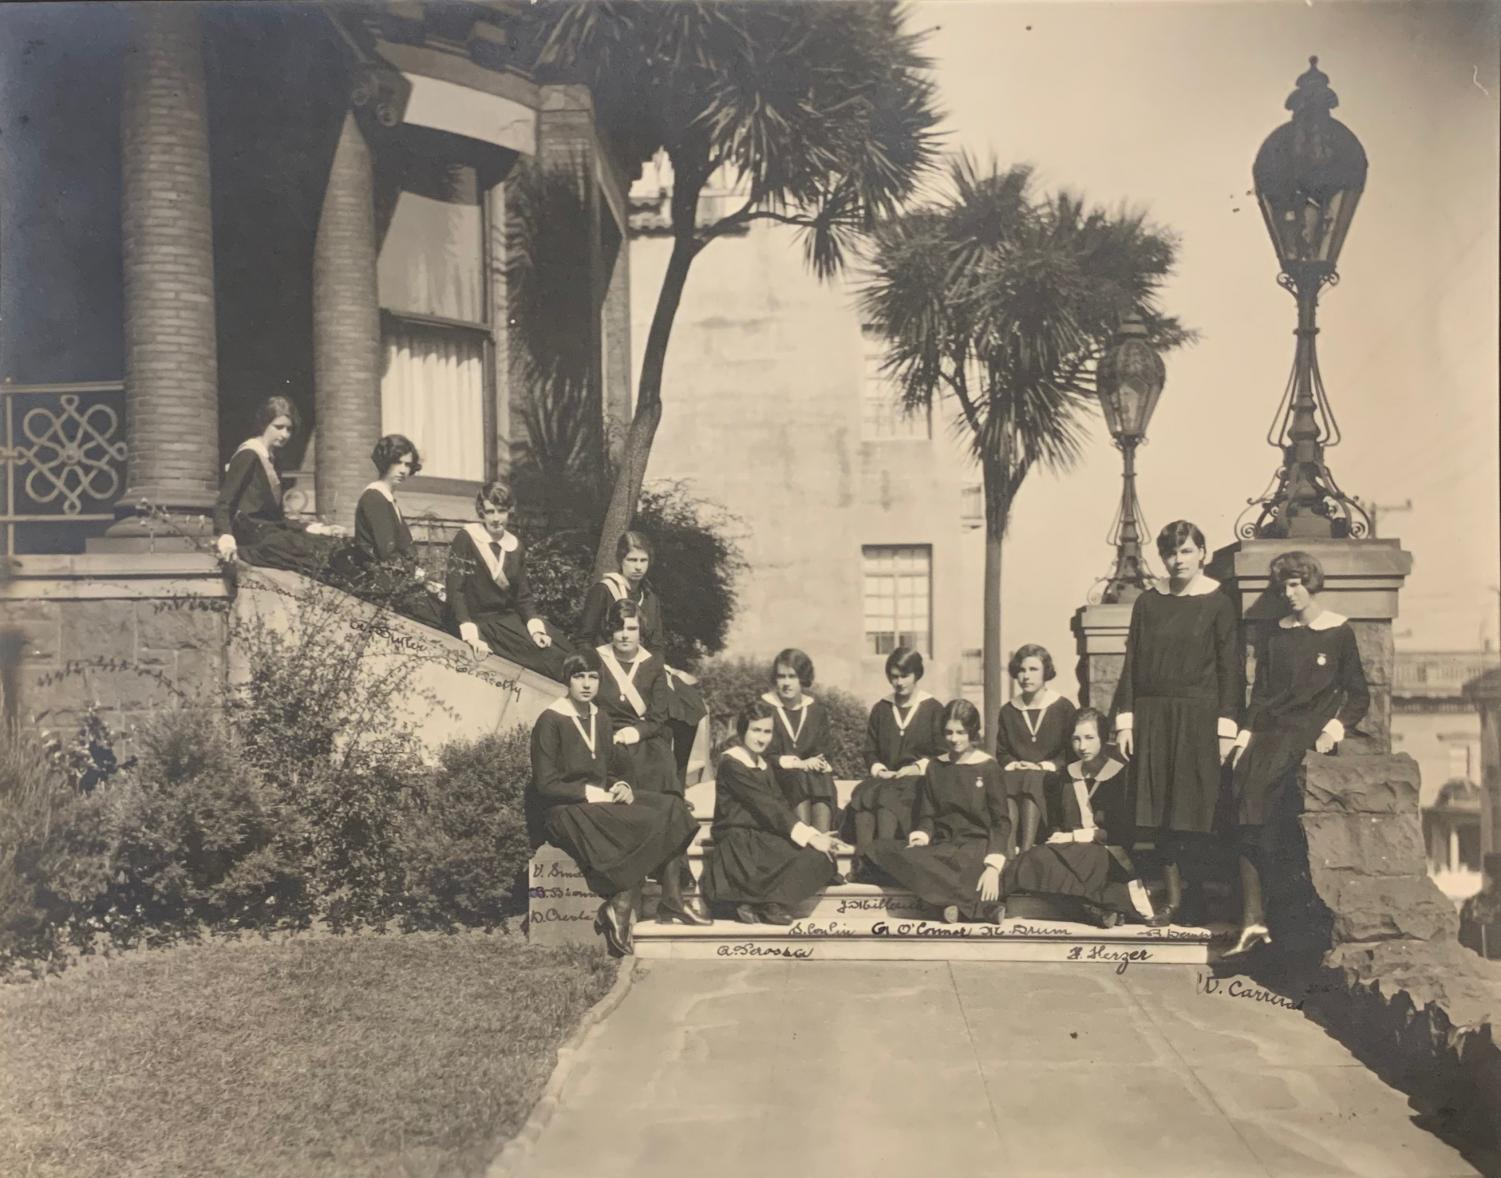 Students pose in front of the Jackson Street Campus situated on the corner of Jackson and Scott streets in the 1920s or 1930s. The Jackson Street school was the third campus adopted by the RSCJs.